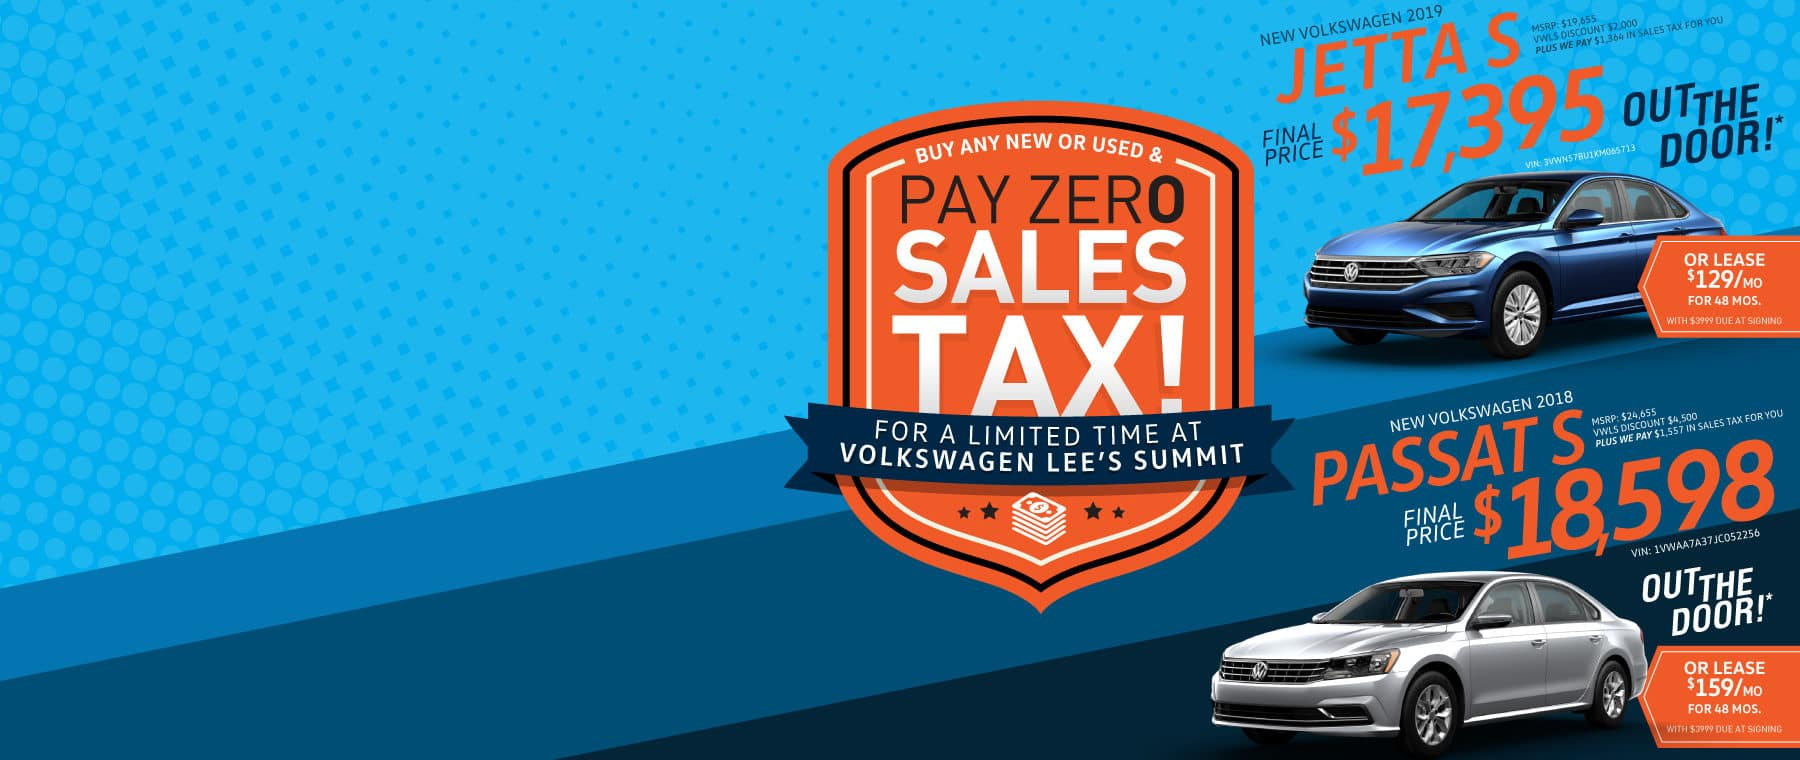 Pay Zero Sales Tax at Volkswagen Lee's Summit